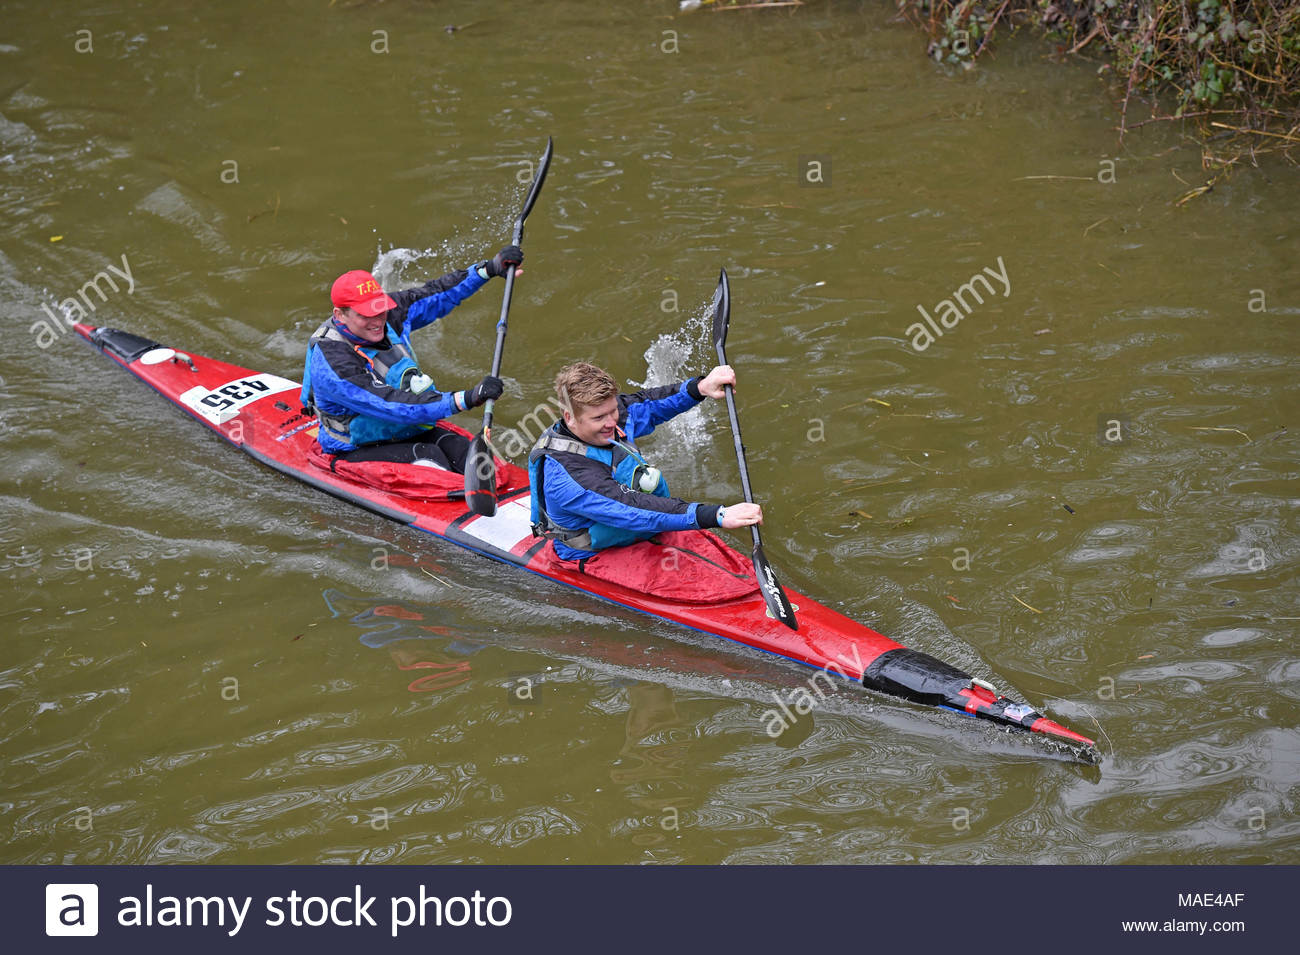 Devizes Wiltshire UK. 31st March 2018.  Will Brazier and Charlie Peters take part in the 70th anniversary of the Devizes to Westminster canoe race over the Easter Weekend starting from Devizes Wharf. Credit: Diane Vose/Alamy Live News - Stock Image